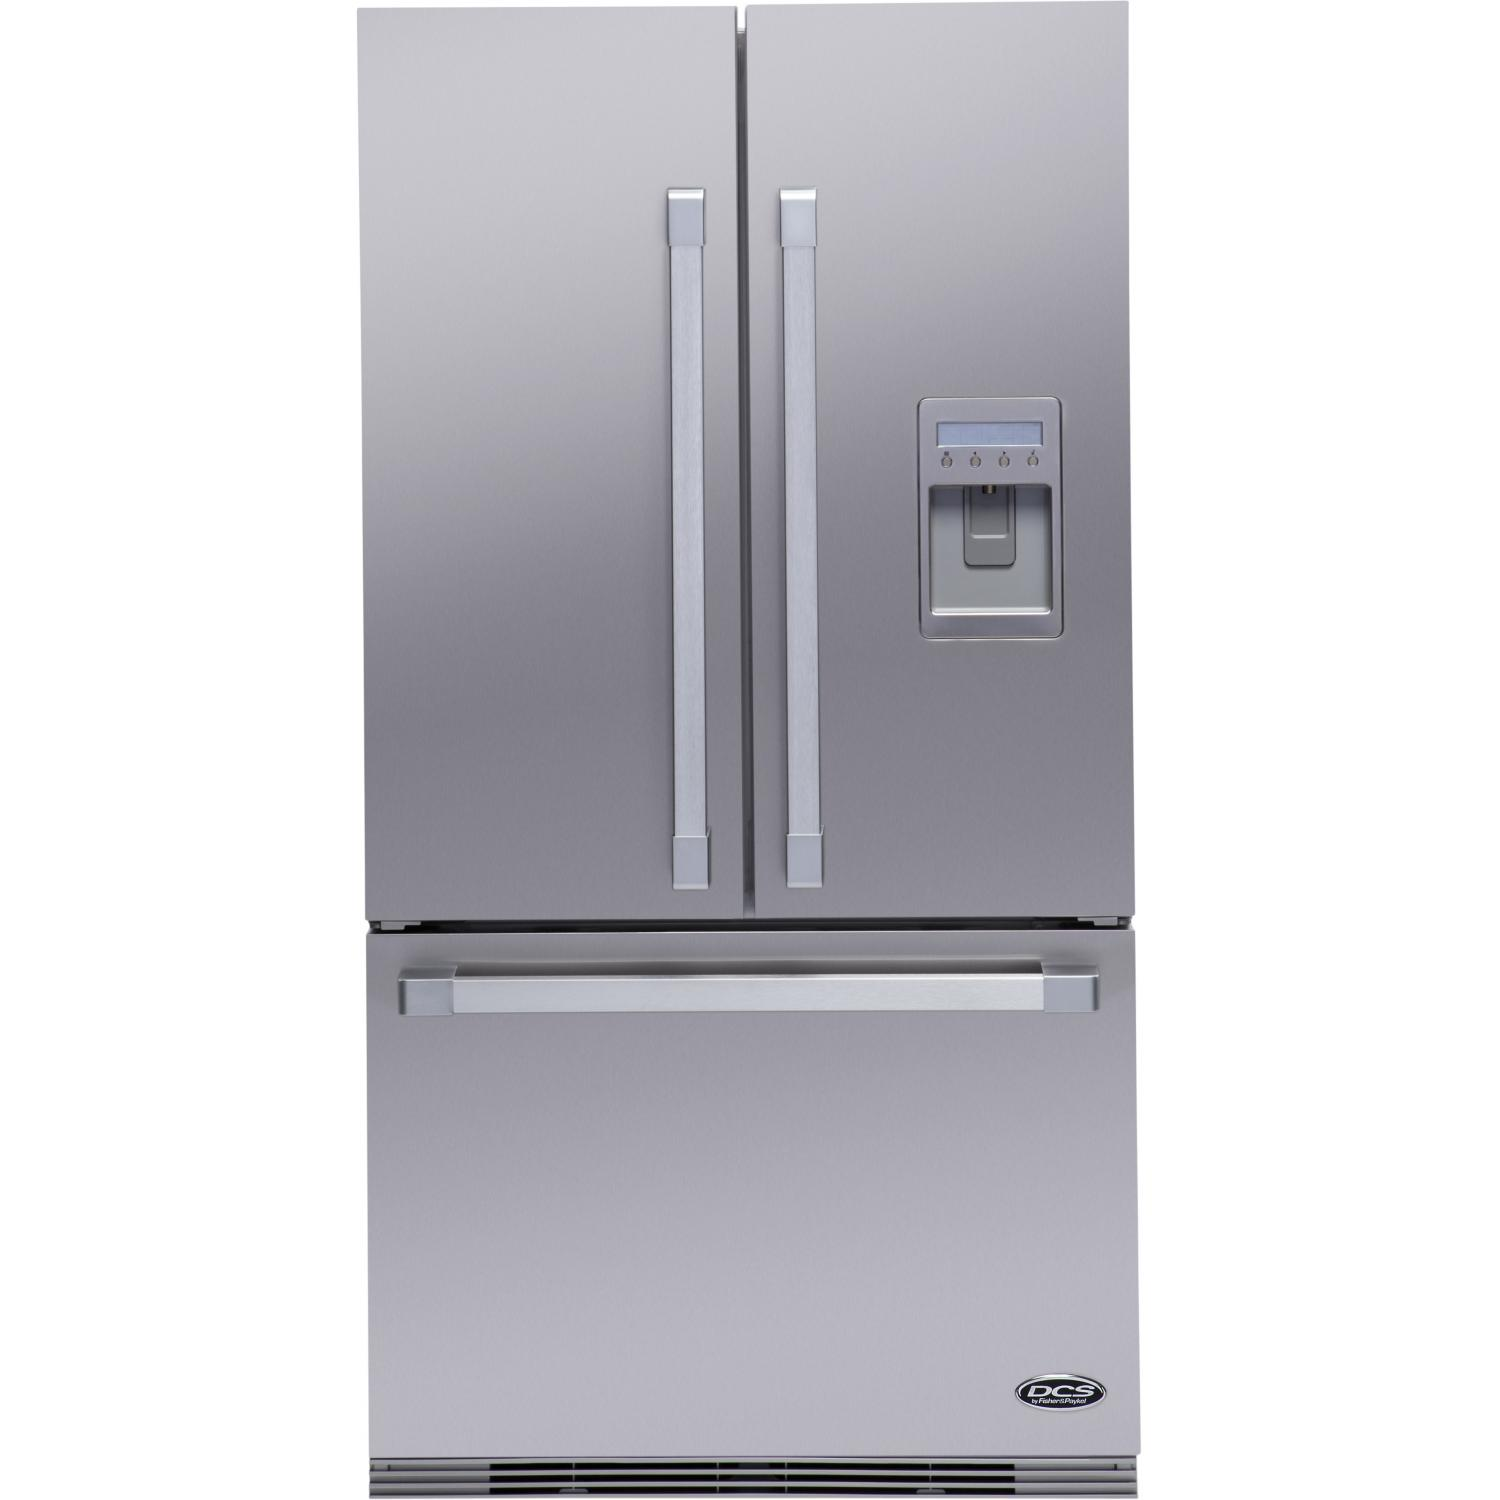 DCS RF195AUUX1 19.5 Cu. Ft. French Door Refrigerator - Stainless Steel